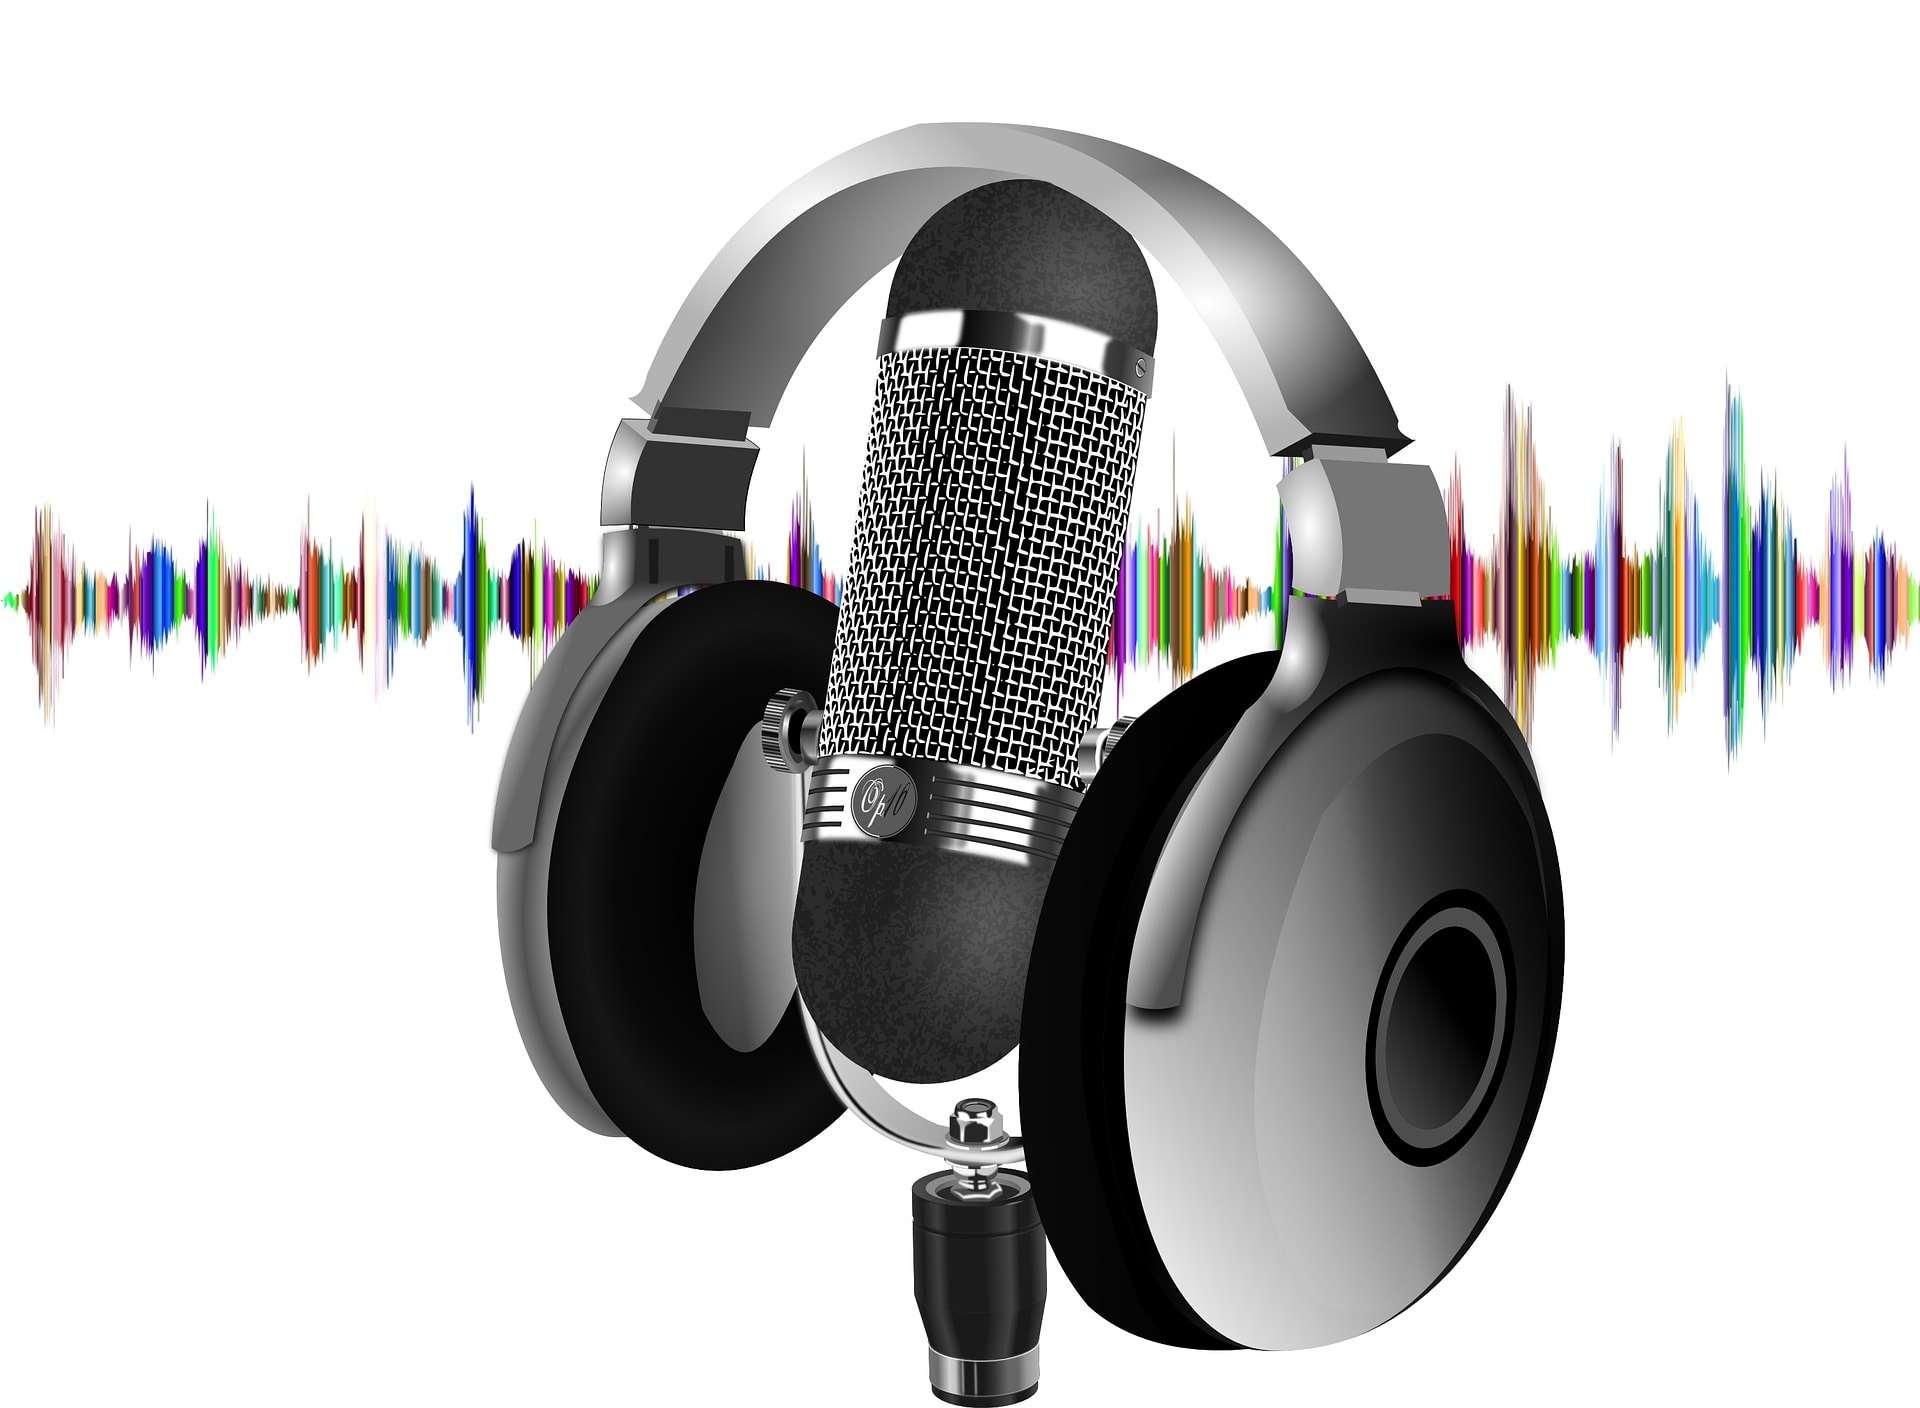 ᐅ Best Headset Microphone for Podcasting [Top 3 Guide]